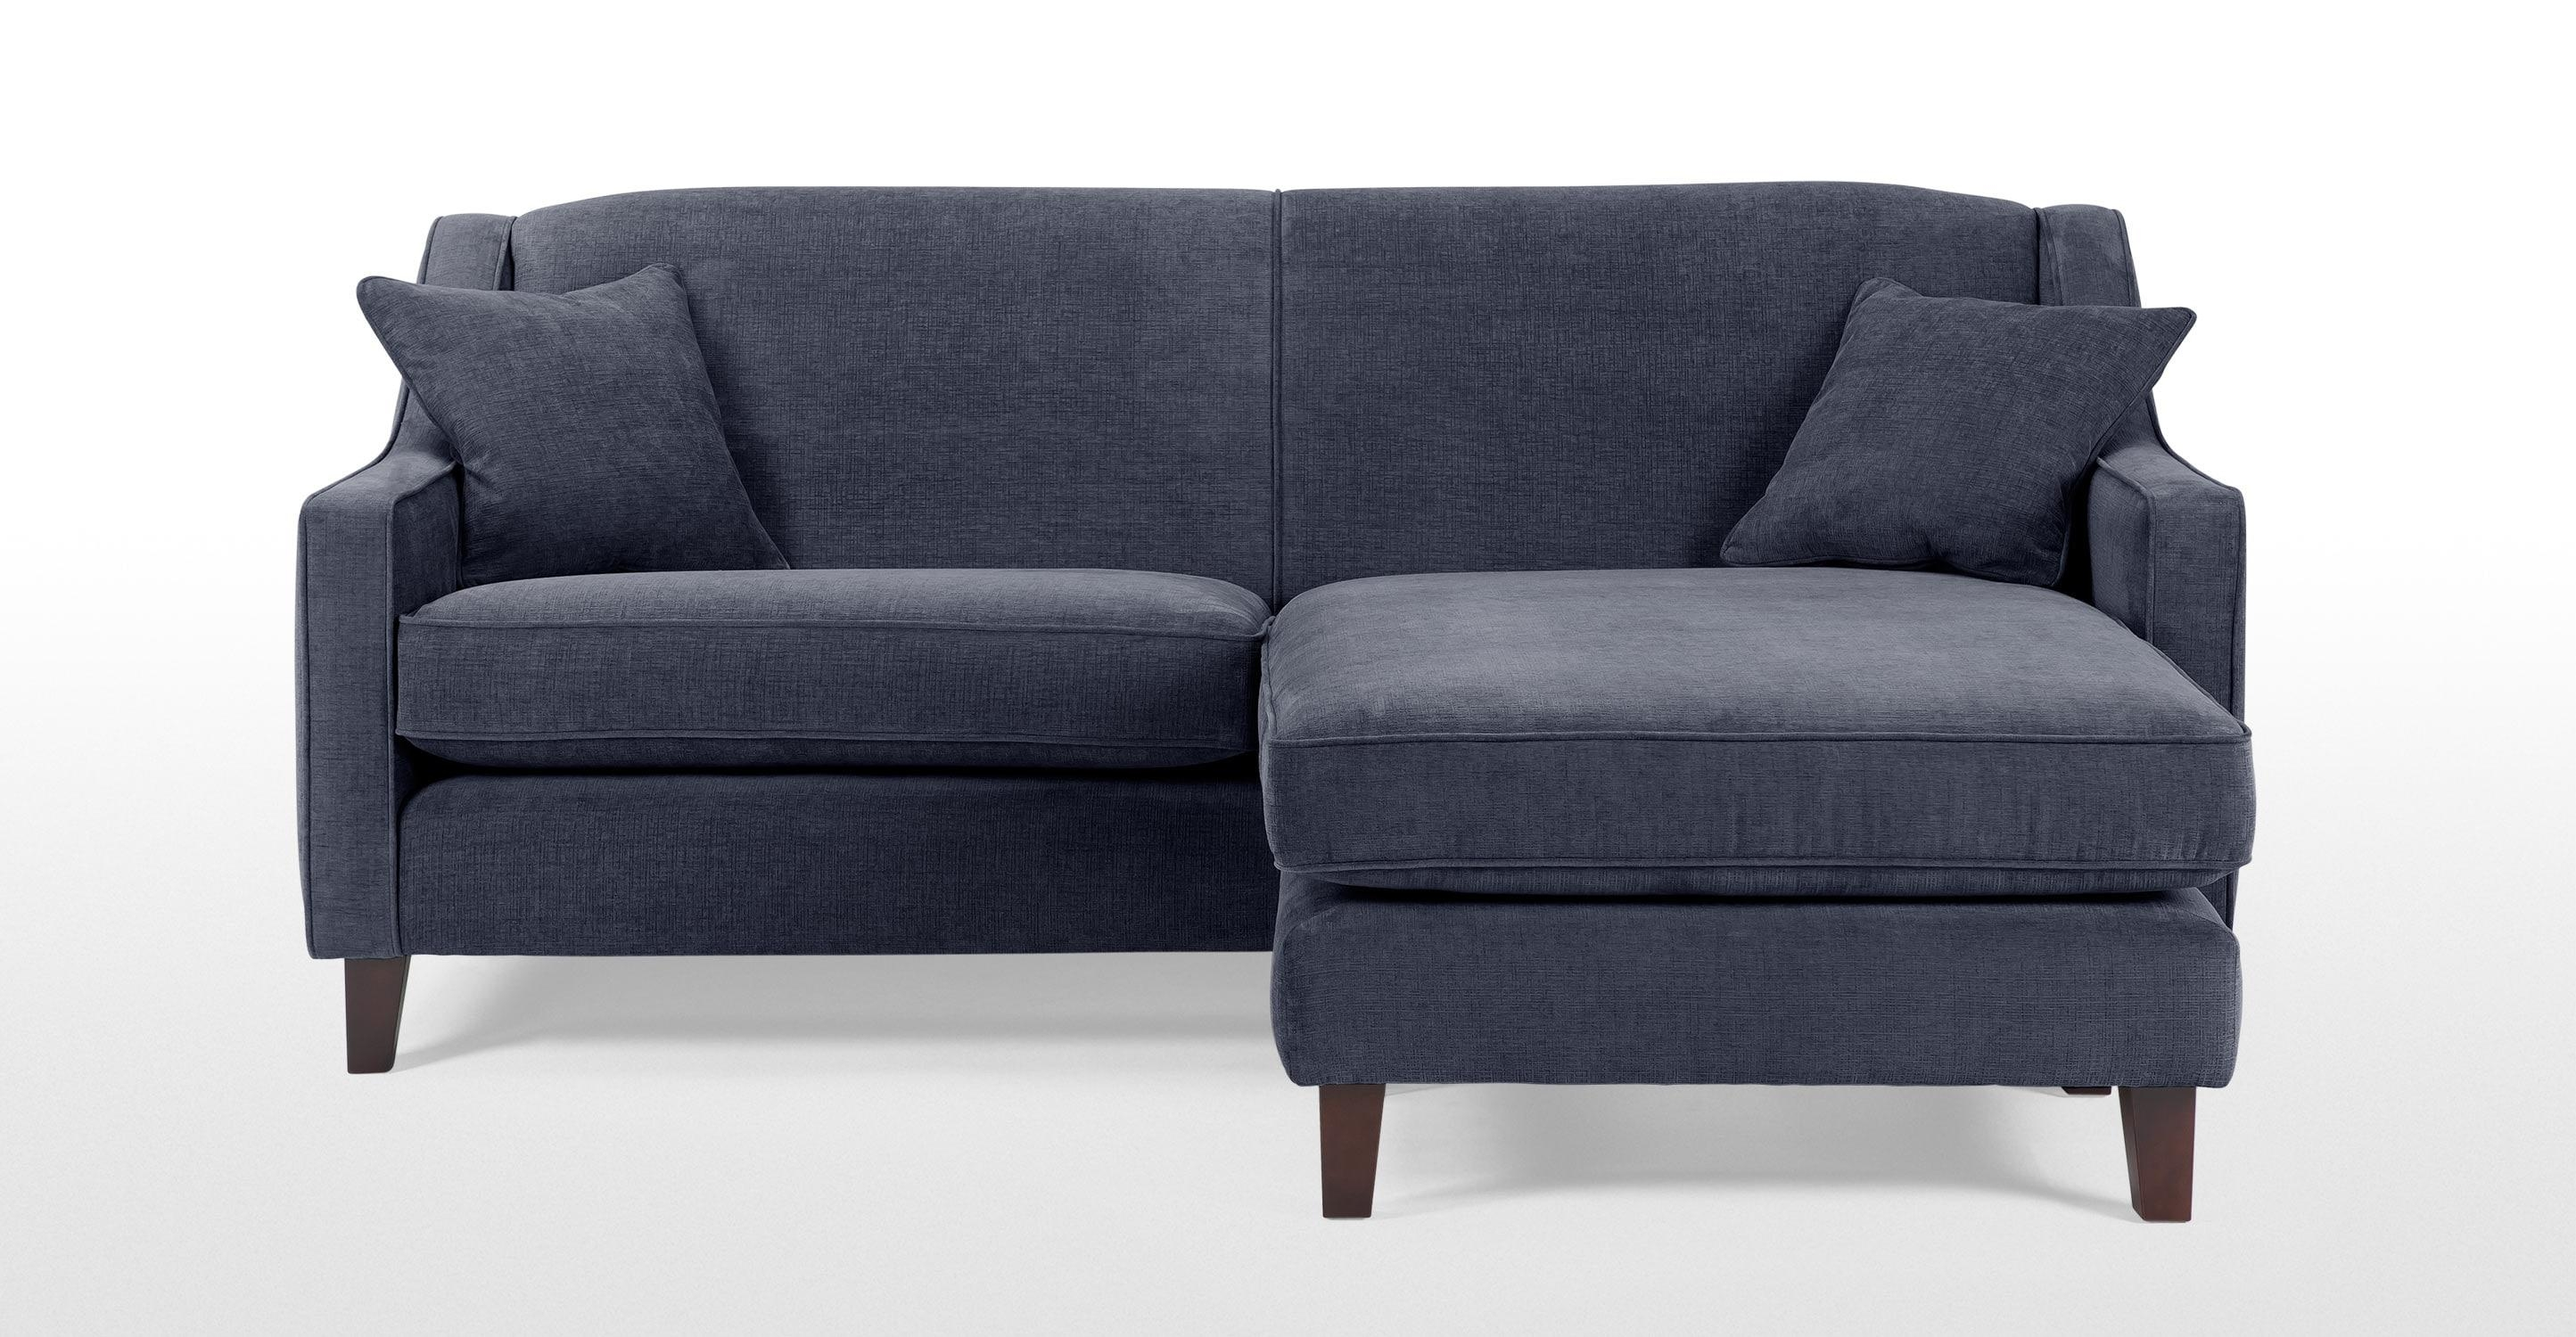 Halston Corner Sofa In Midnight Blue | Made Inside Midnight Blue Sofas (Image 12 of 20)